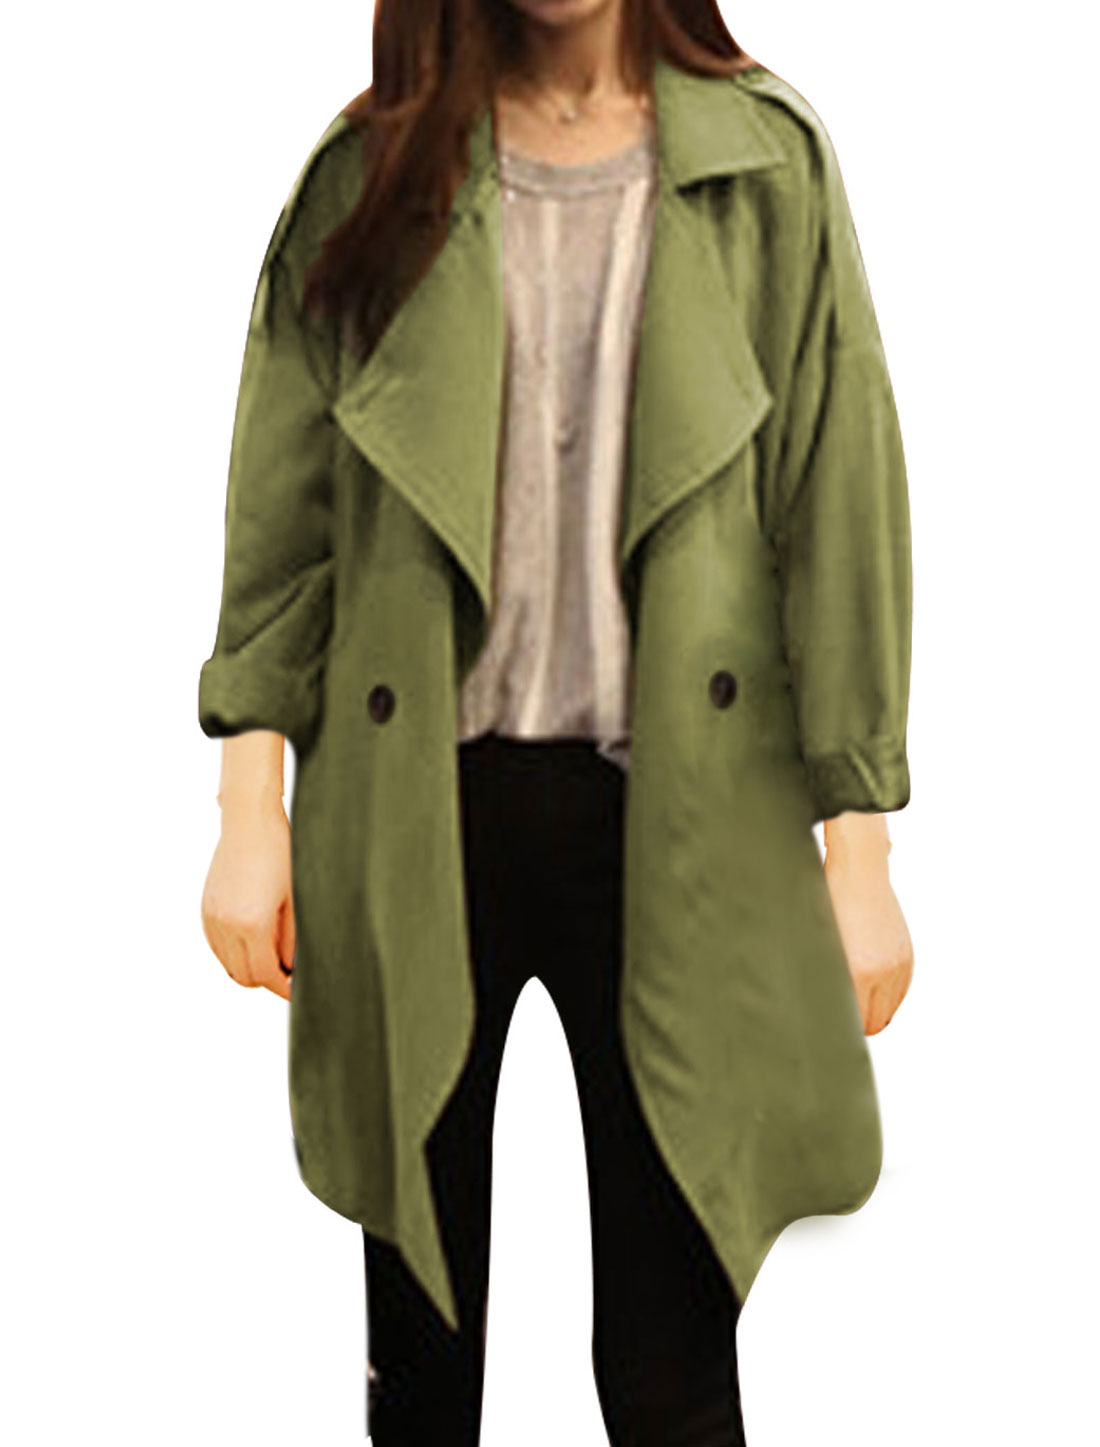 Women Double Breasted Slant Pockets Notched Lapel Trench Coat Army Green M